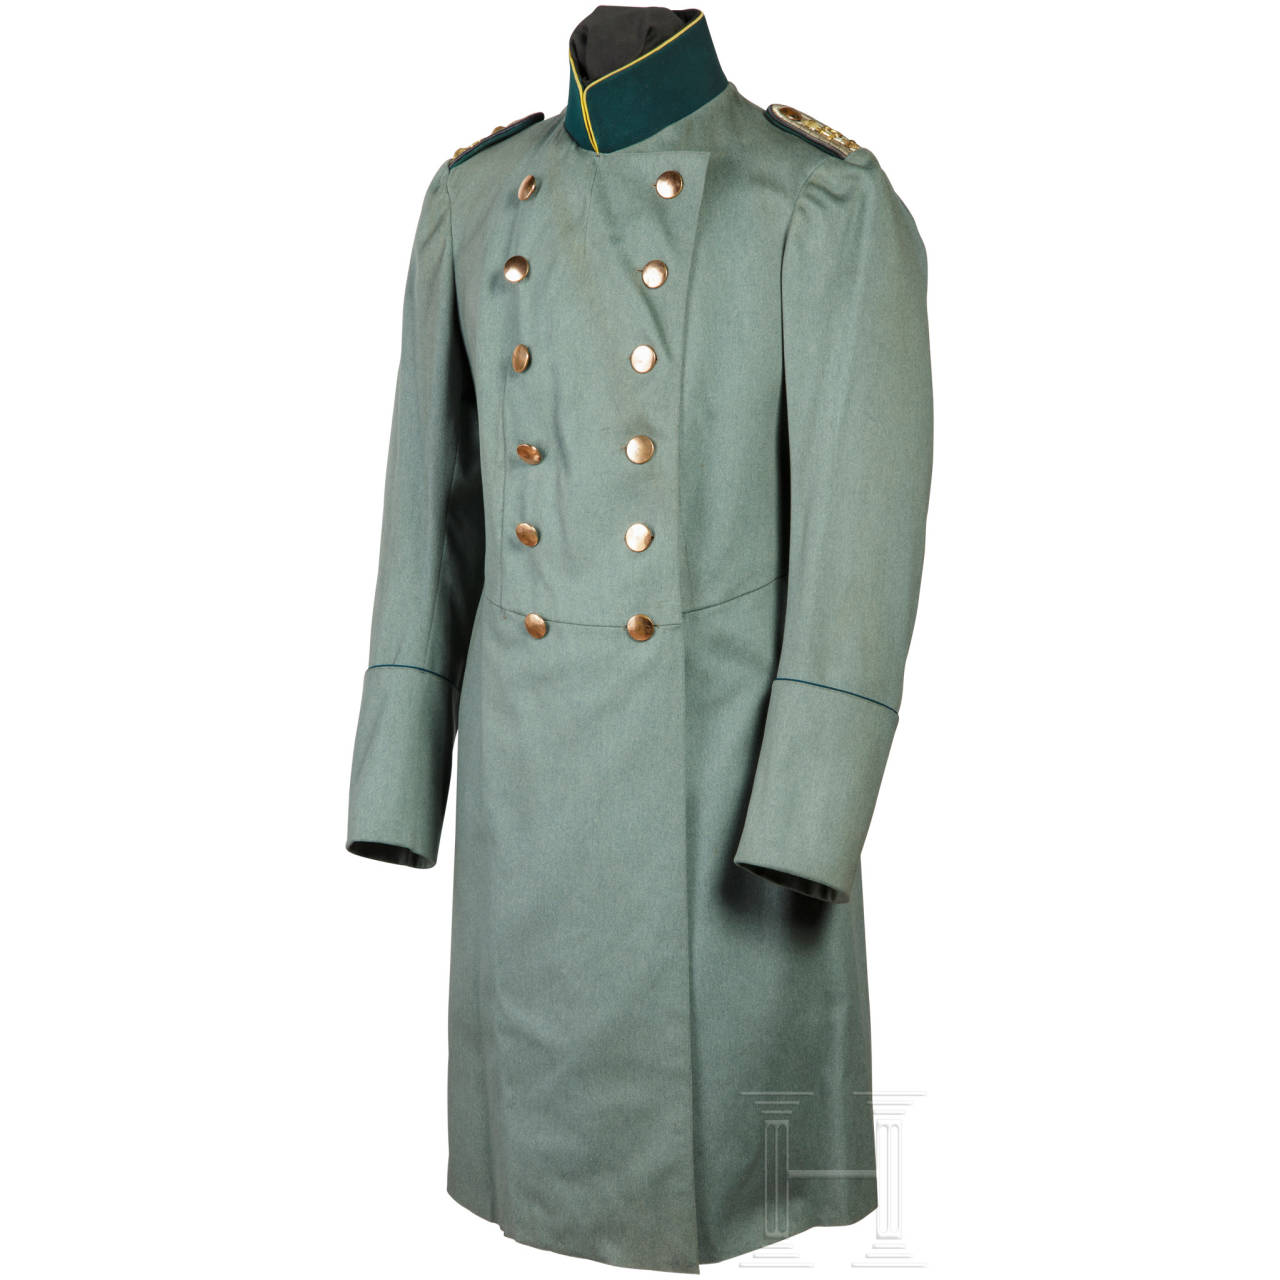 Overcoat for a Rittmeister in the 13th Mounted Rifles Regiment